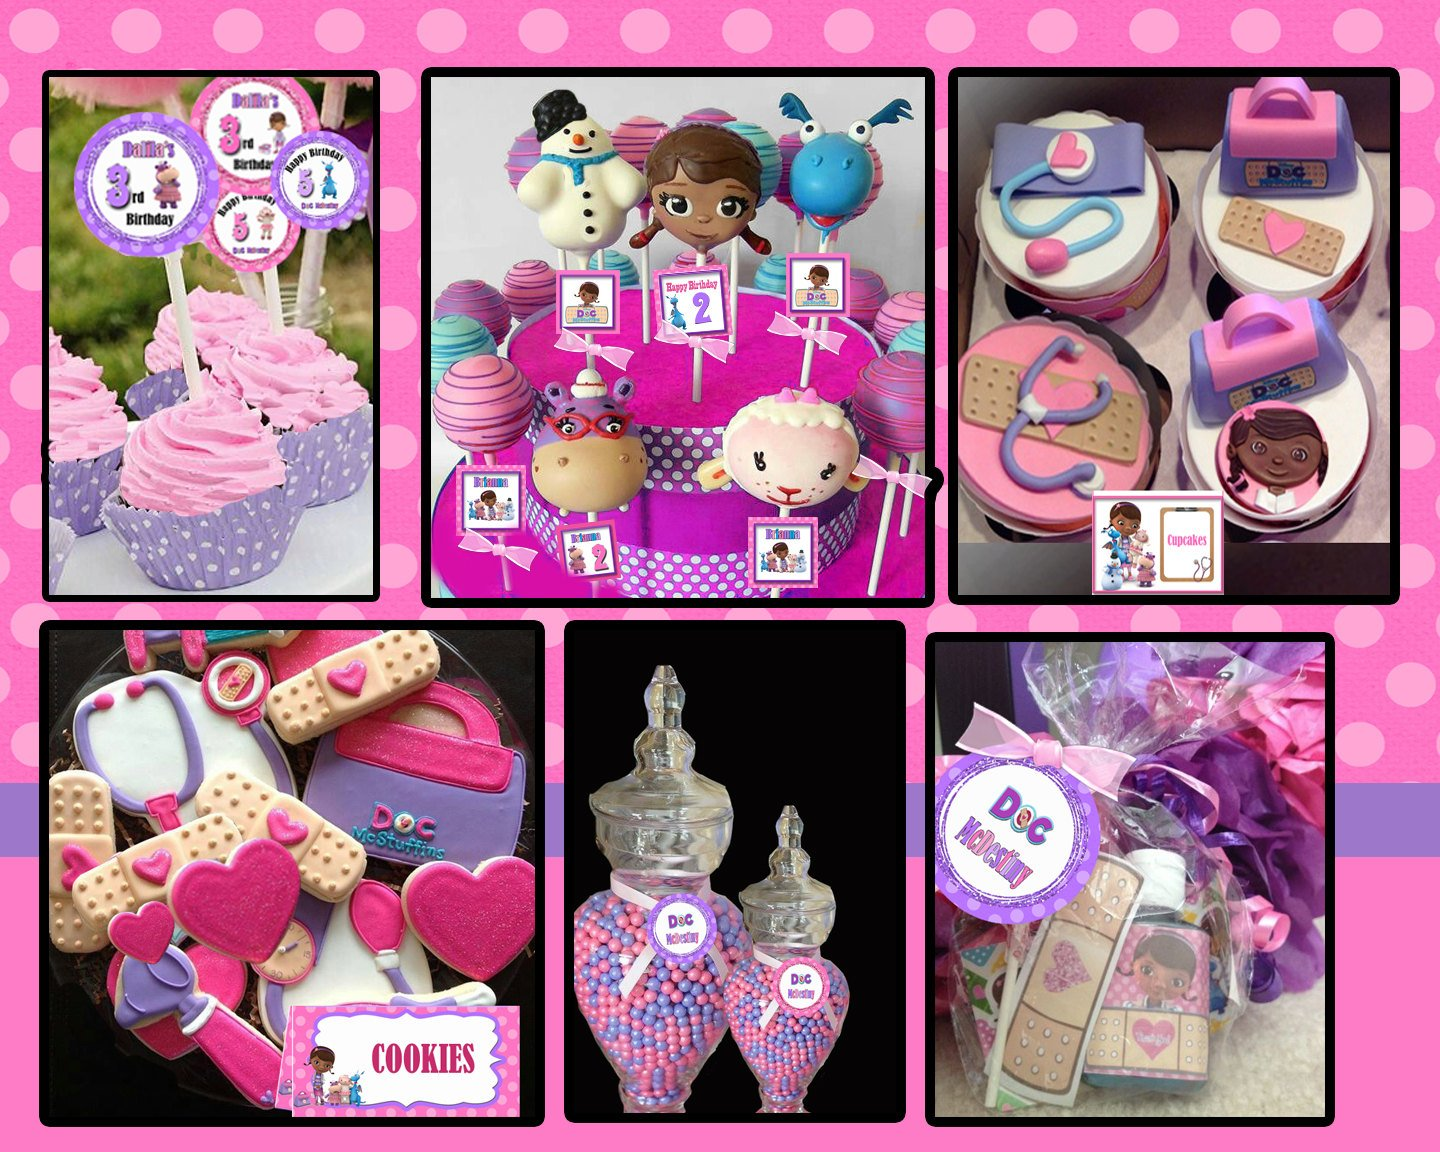 Birthday party planning ideas amp supplies partyideapros com